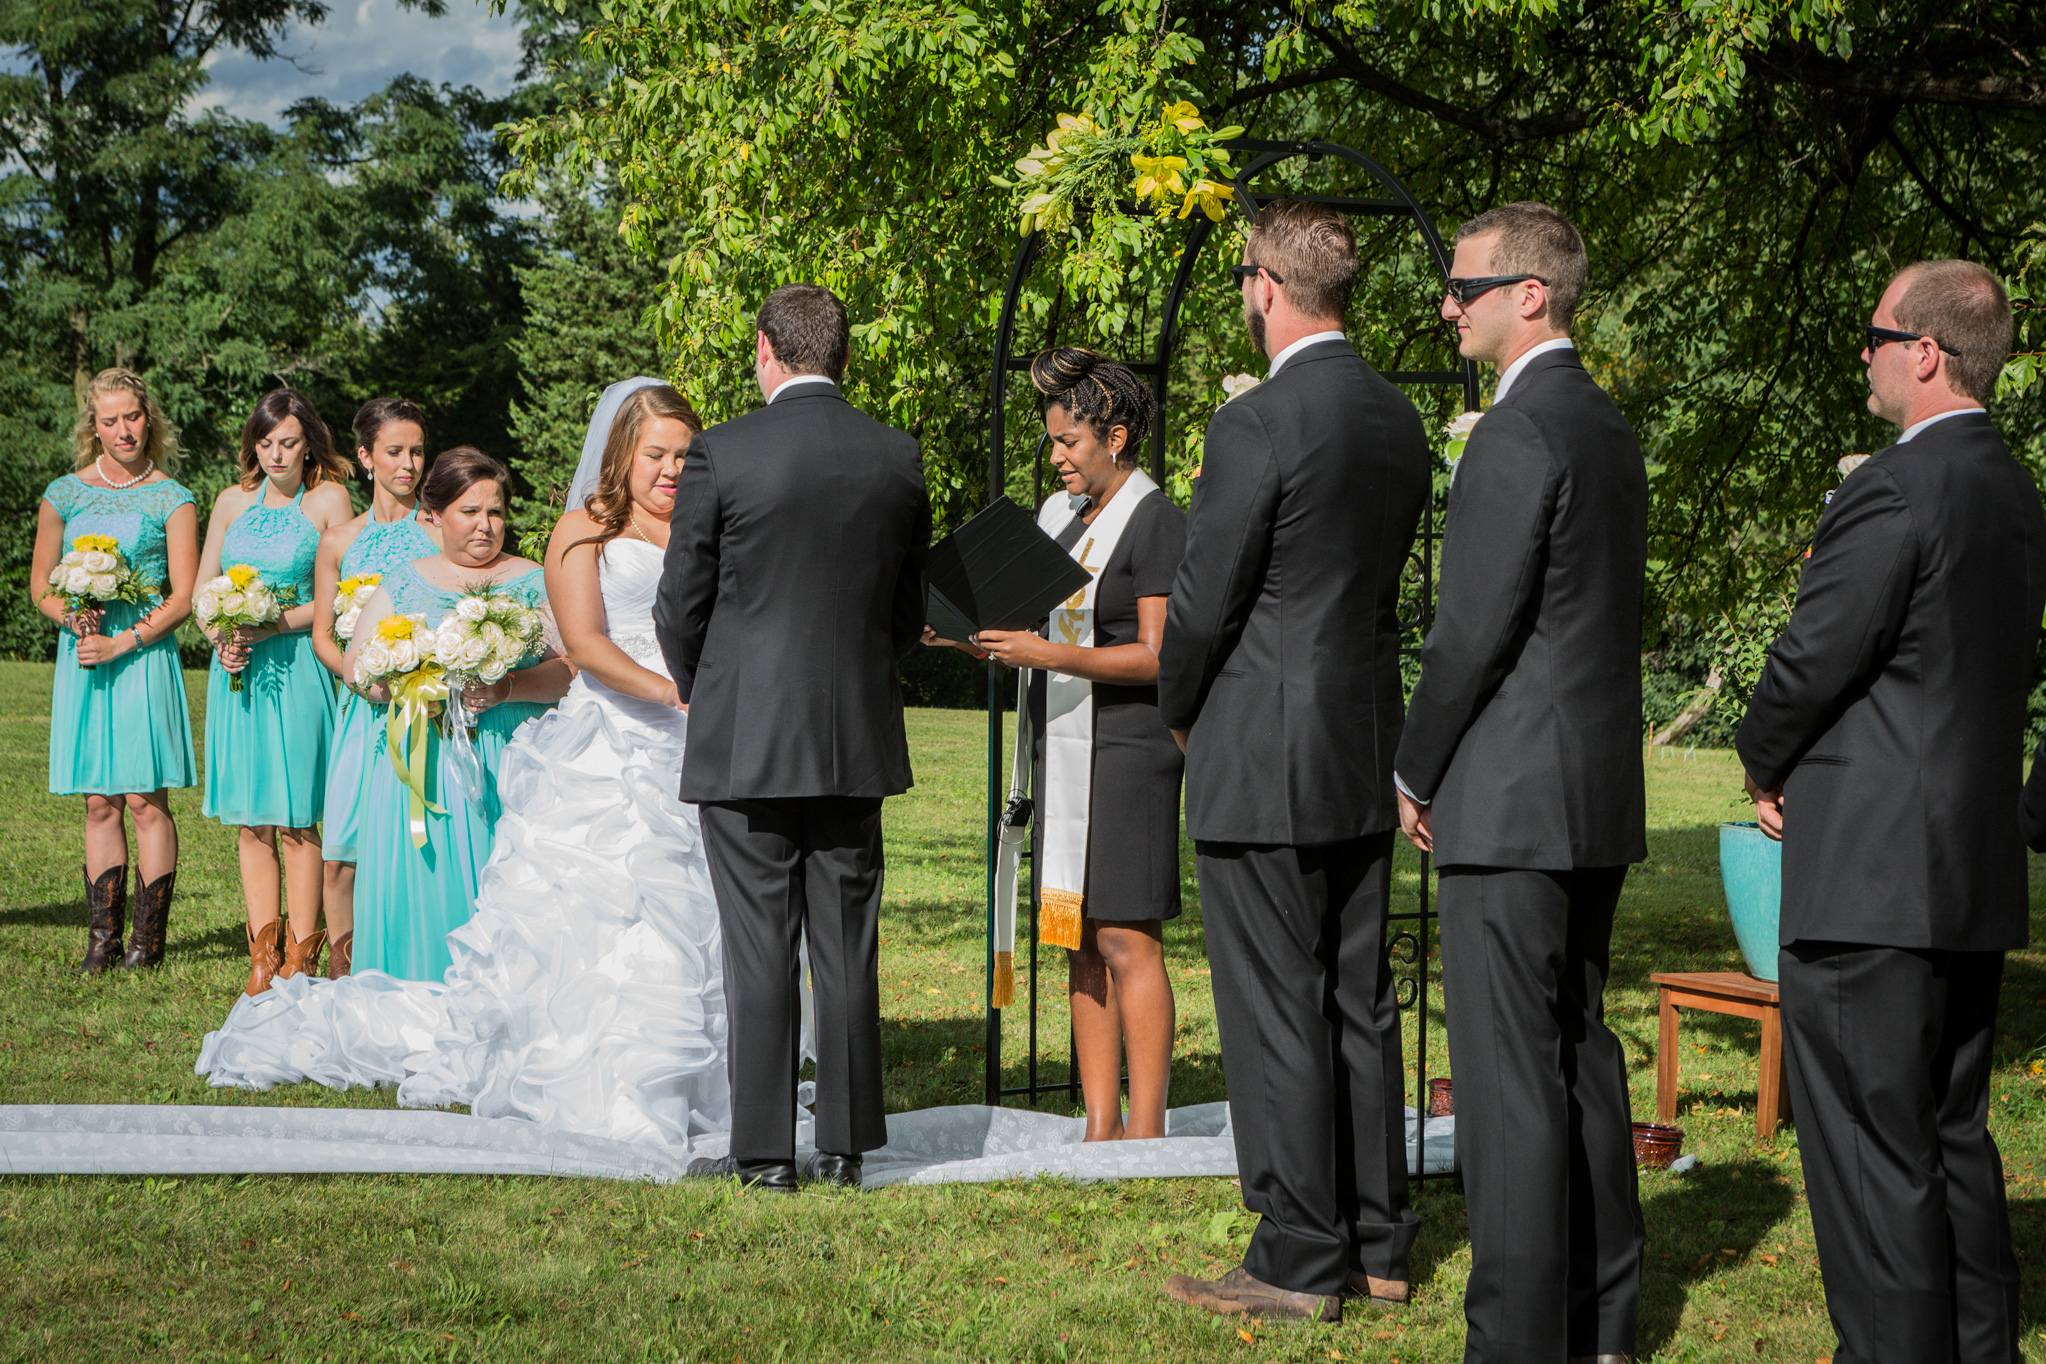 Annie_Matthew_barrington_wedding_outdoor_1.jpg